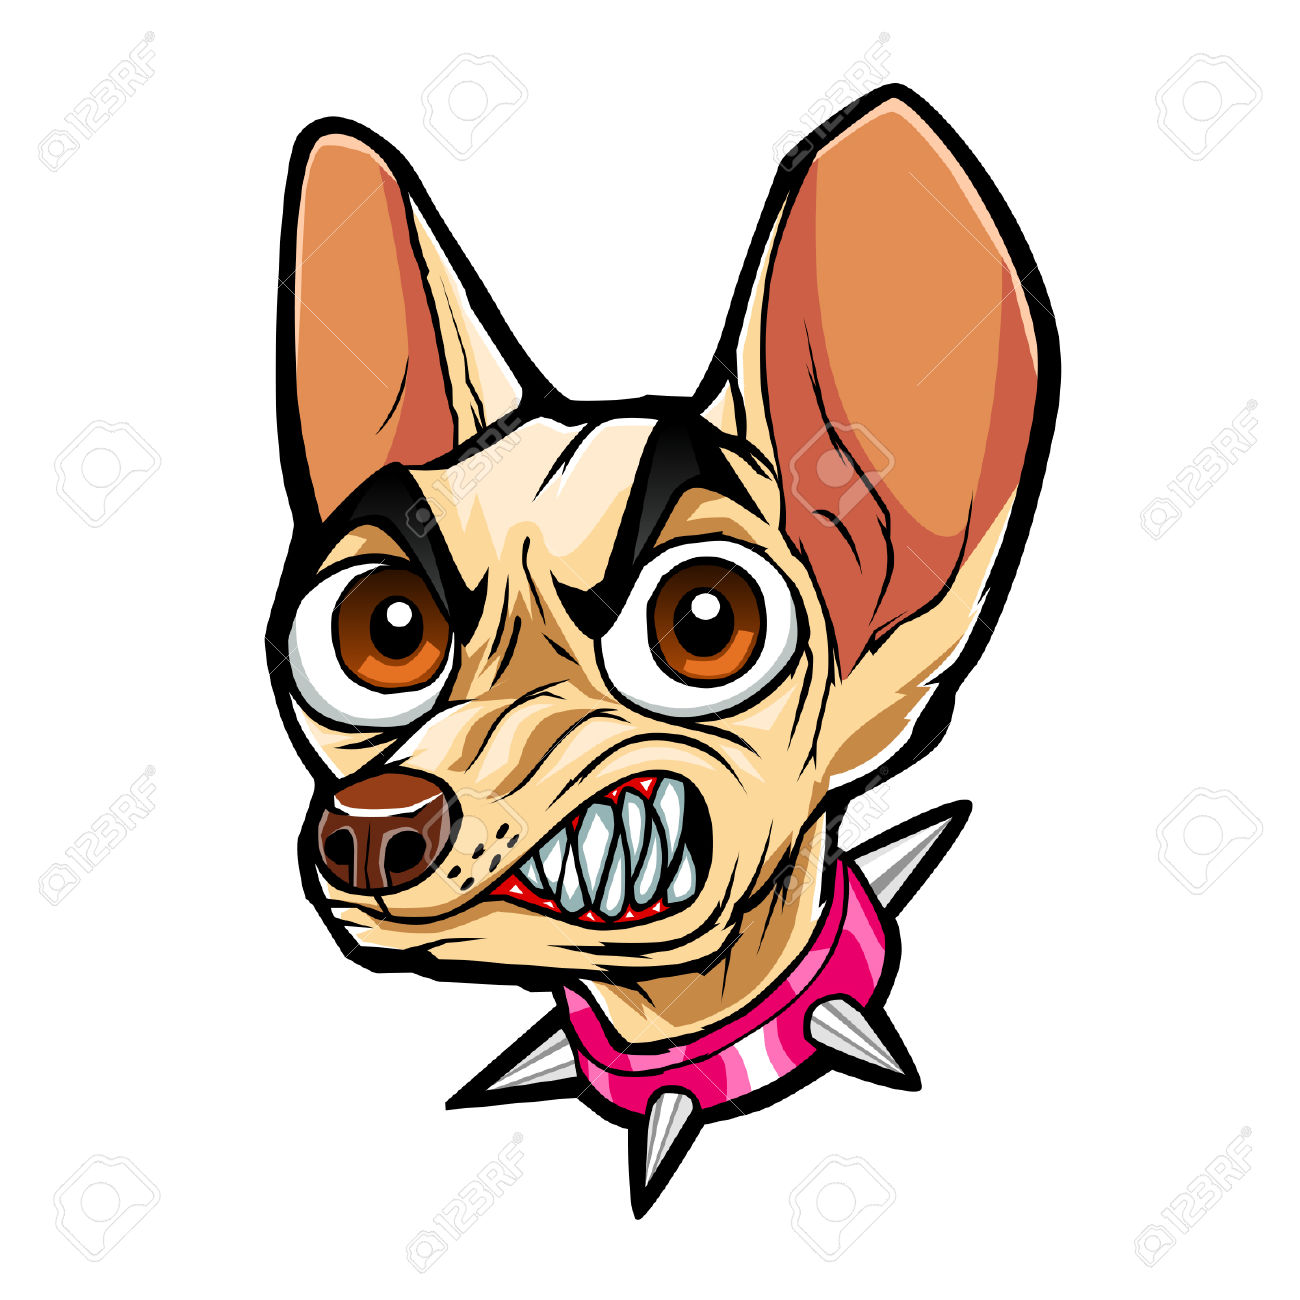 chihuahua clipart animated